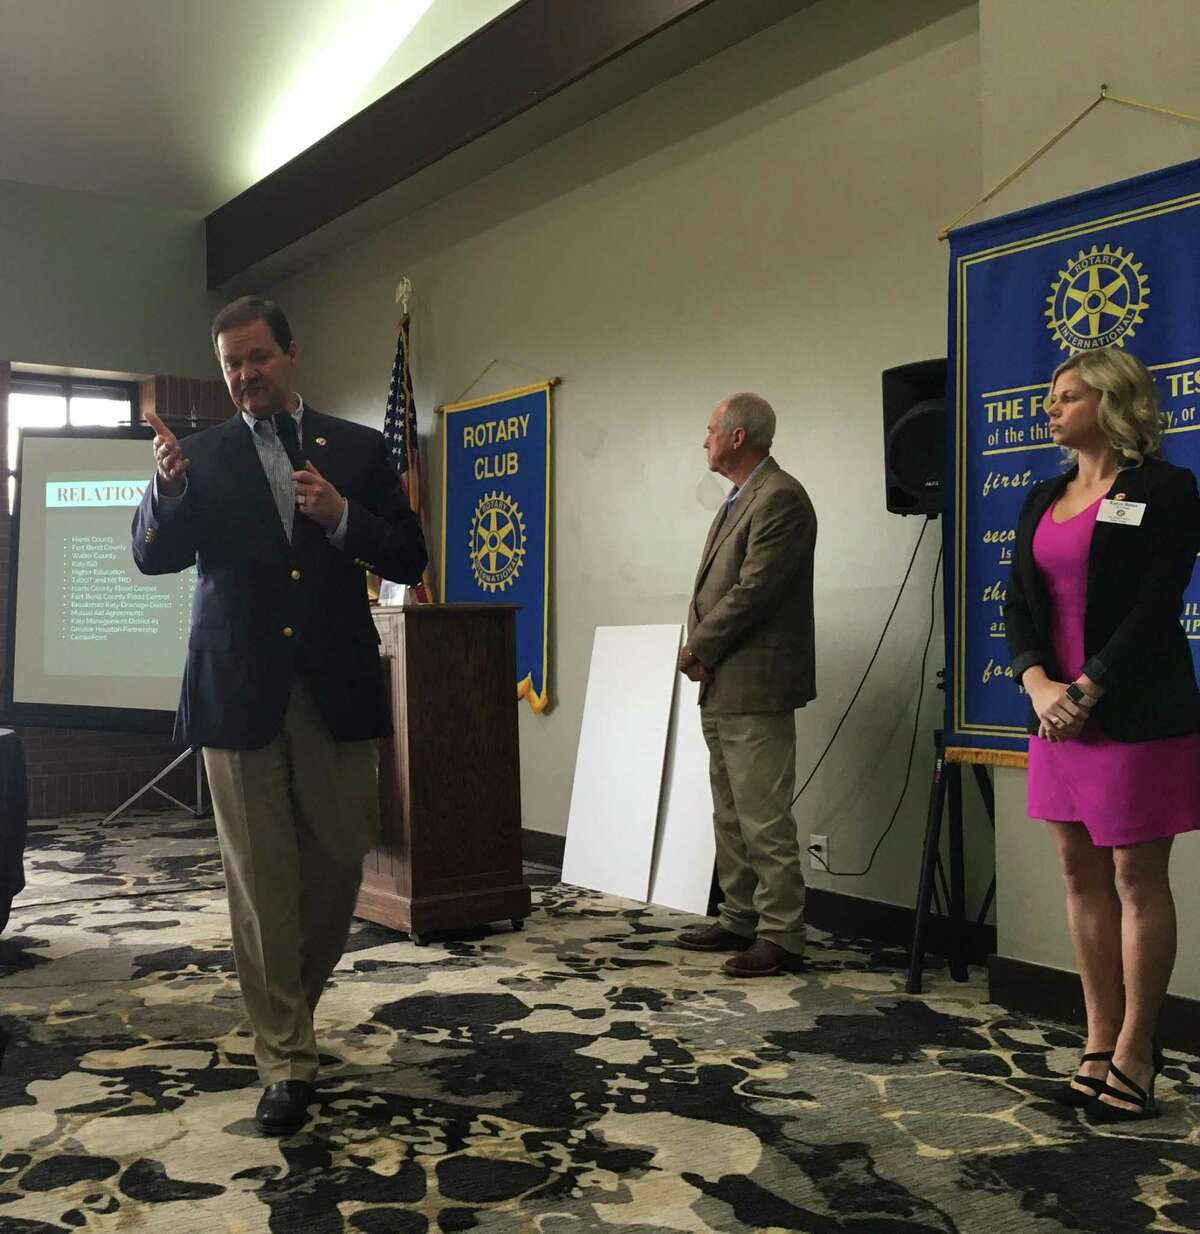 Byron Hebert, Katy city administrator, was one of three city officials who gave a State of the City address to the Rotary Club of Katy on Jan. 30. Also speaking were Katy Mayor Bill Hastings and  Director of Tourism Marketing and Public Kayce Reina.